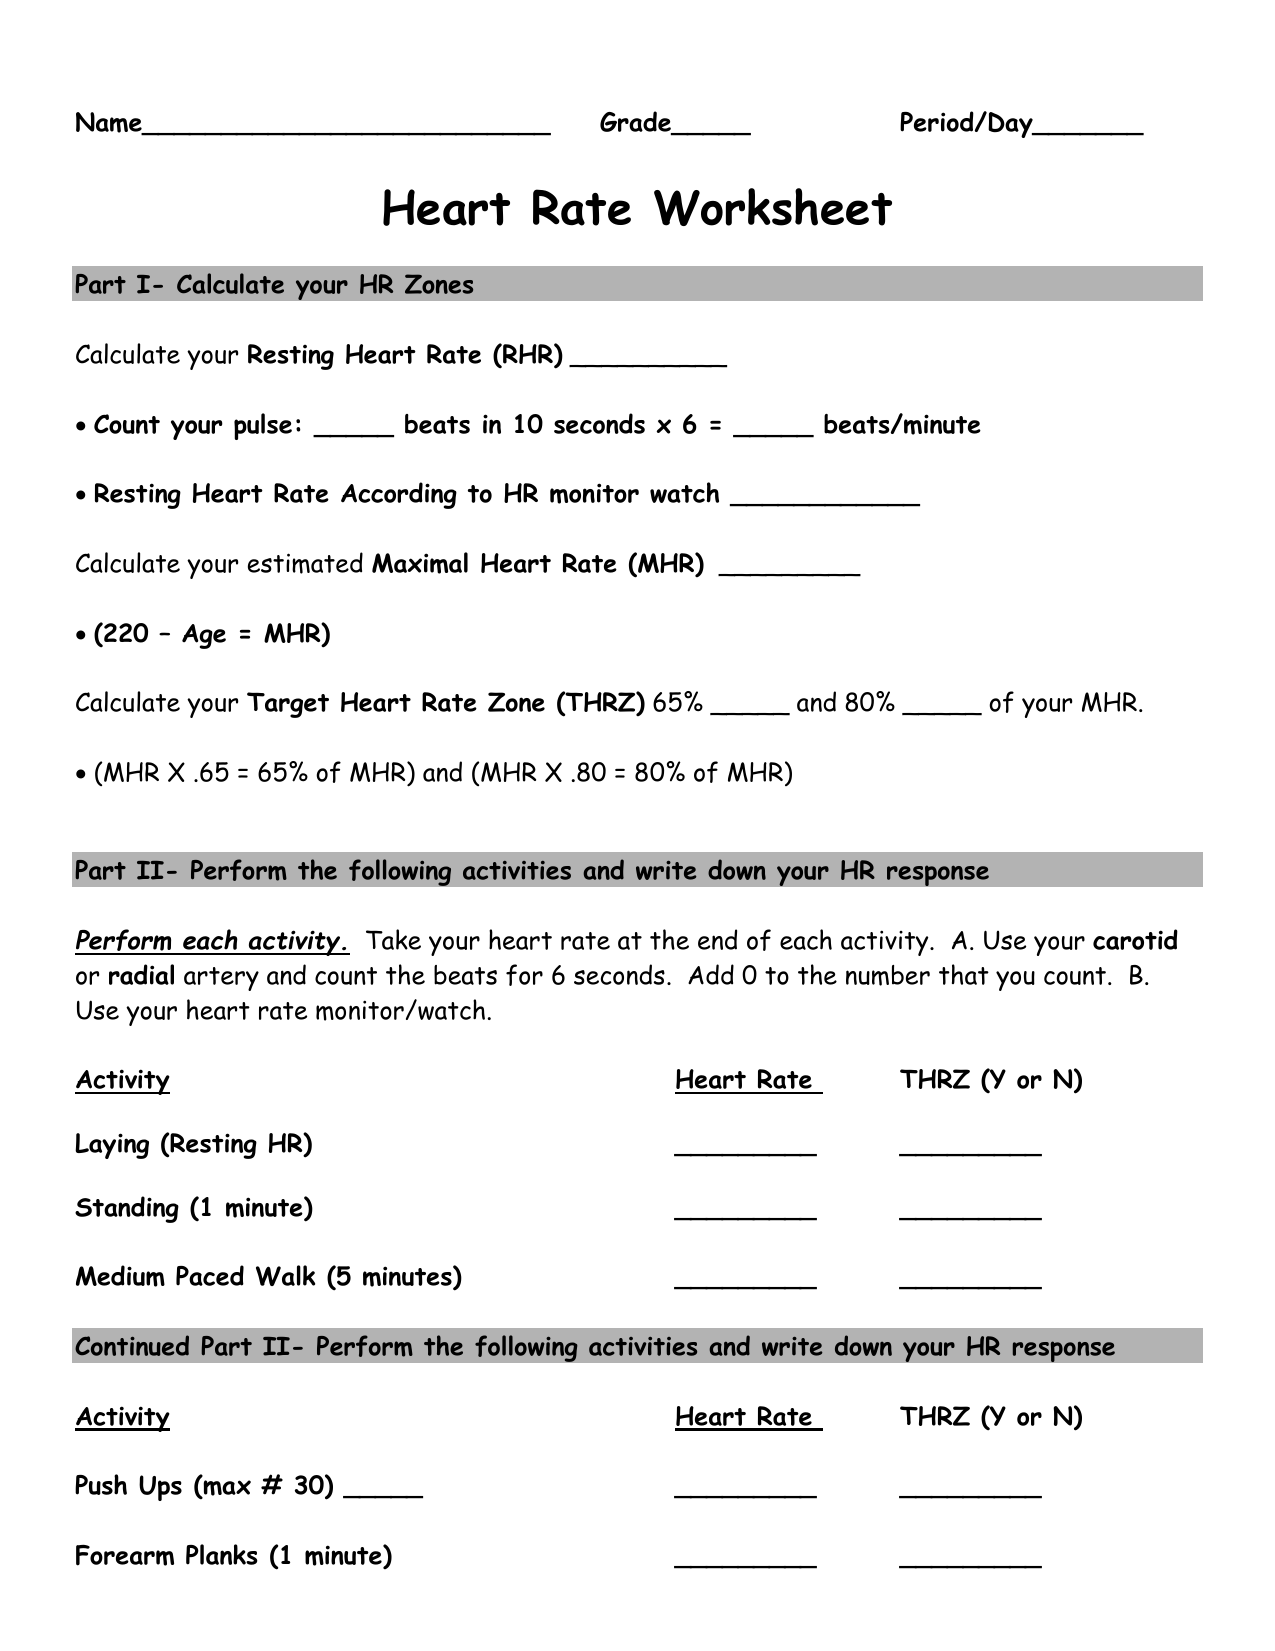 Worksheets Physical Education Worksheets For Middle School heart rate activity worksheet belle vernon area school district district